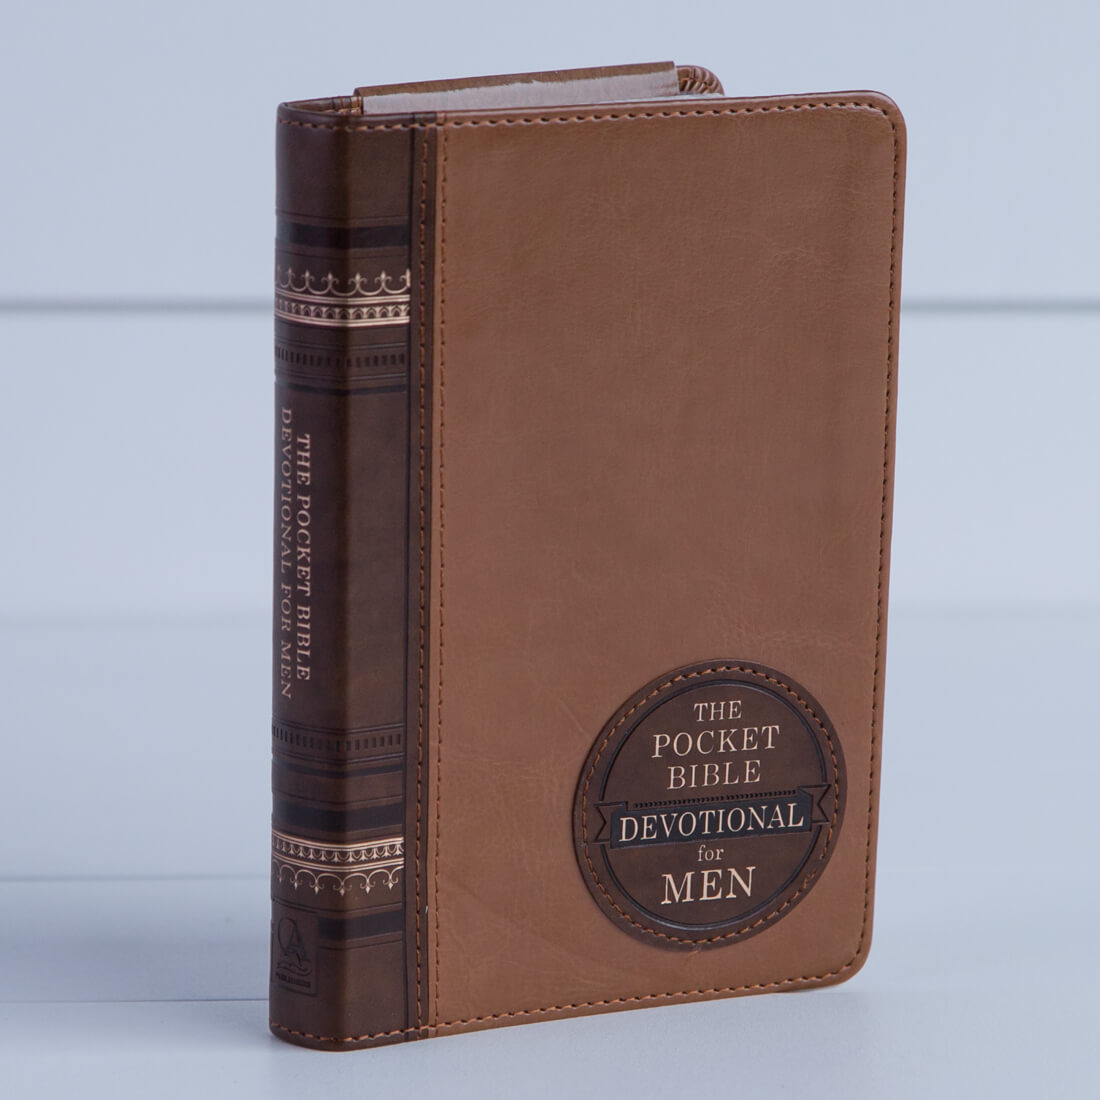 The Pocket Bible Devotional for Men